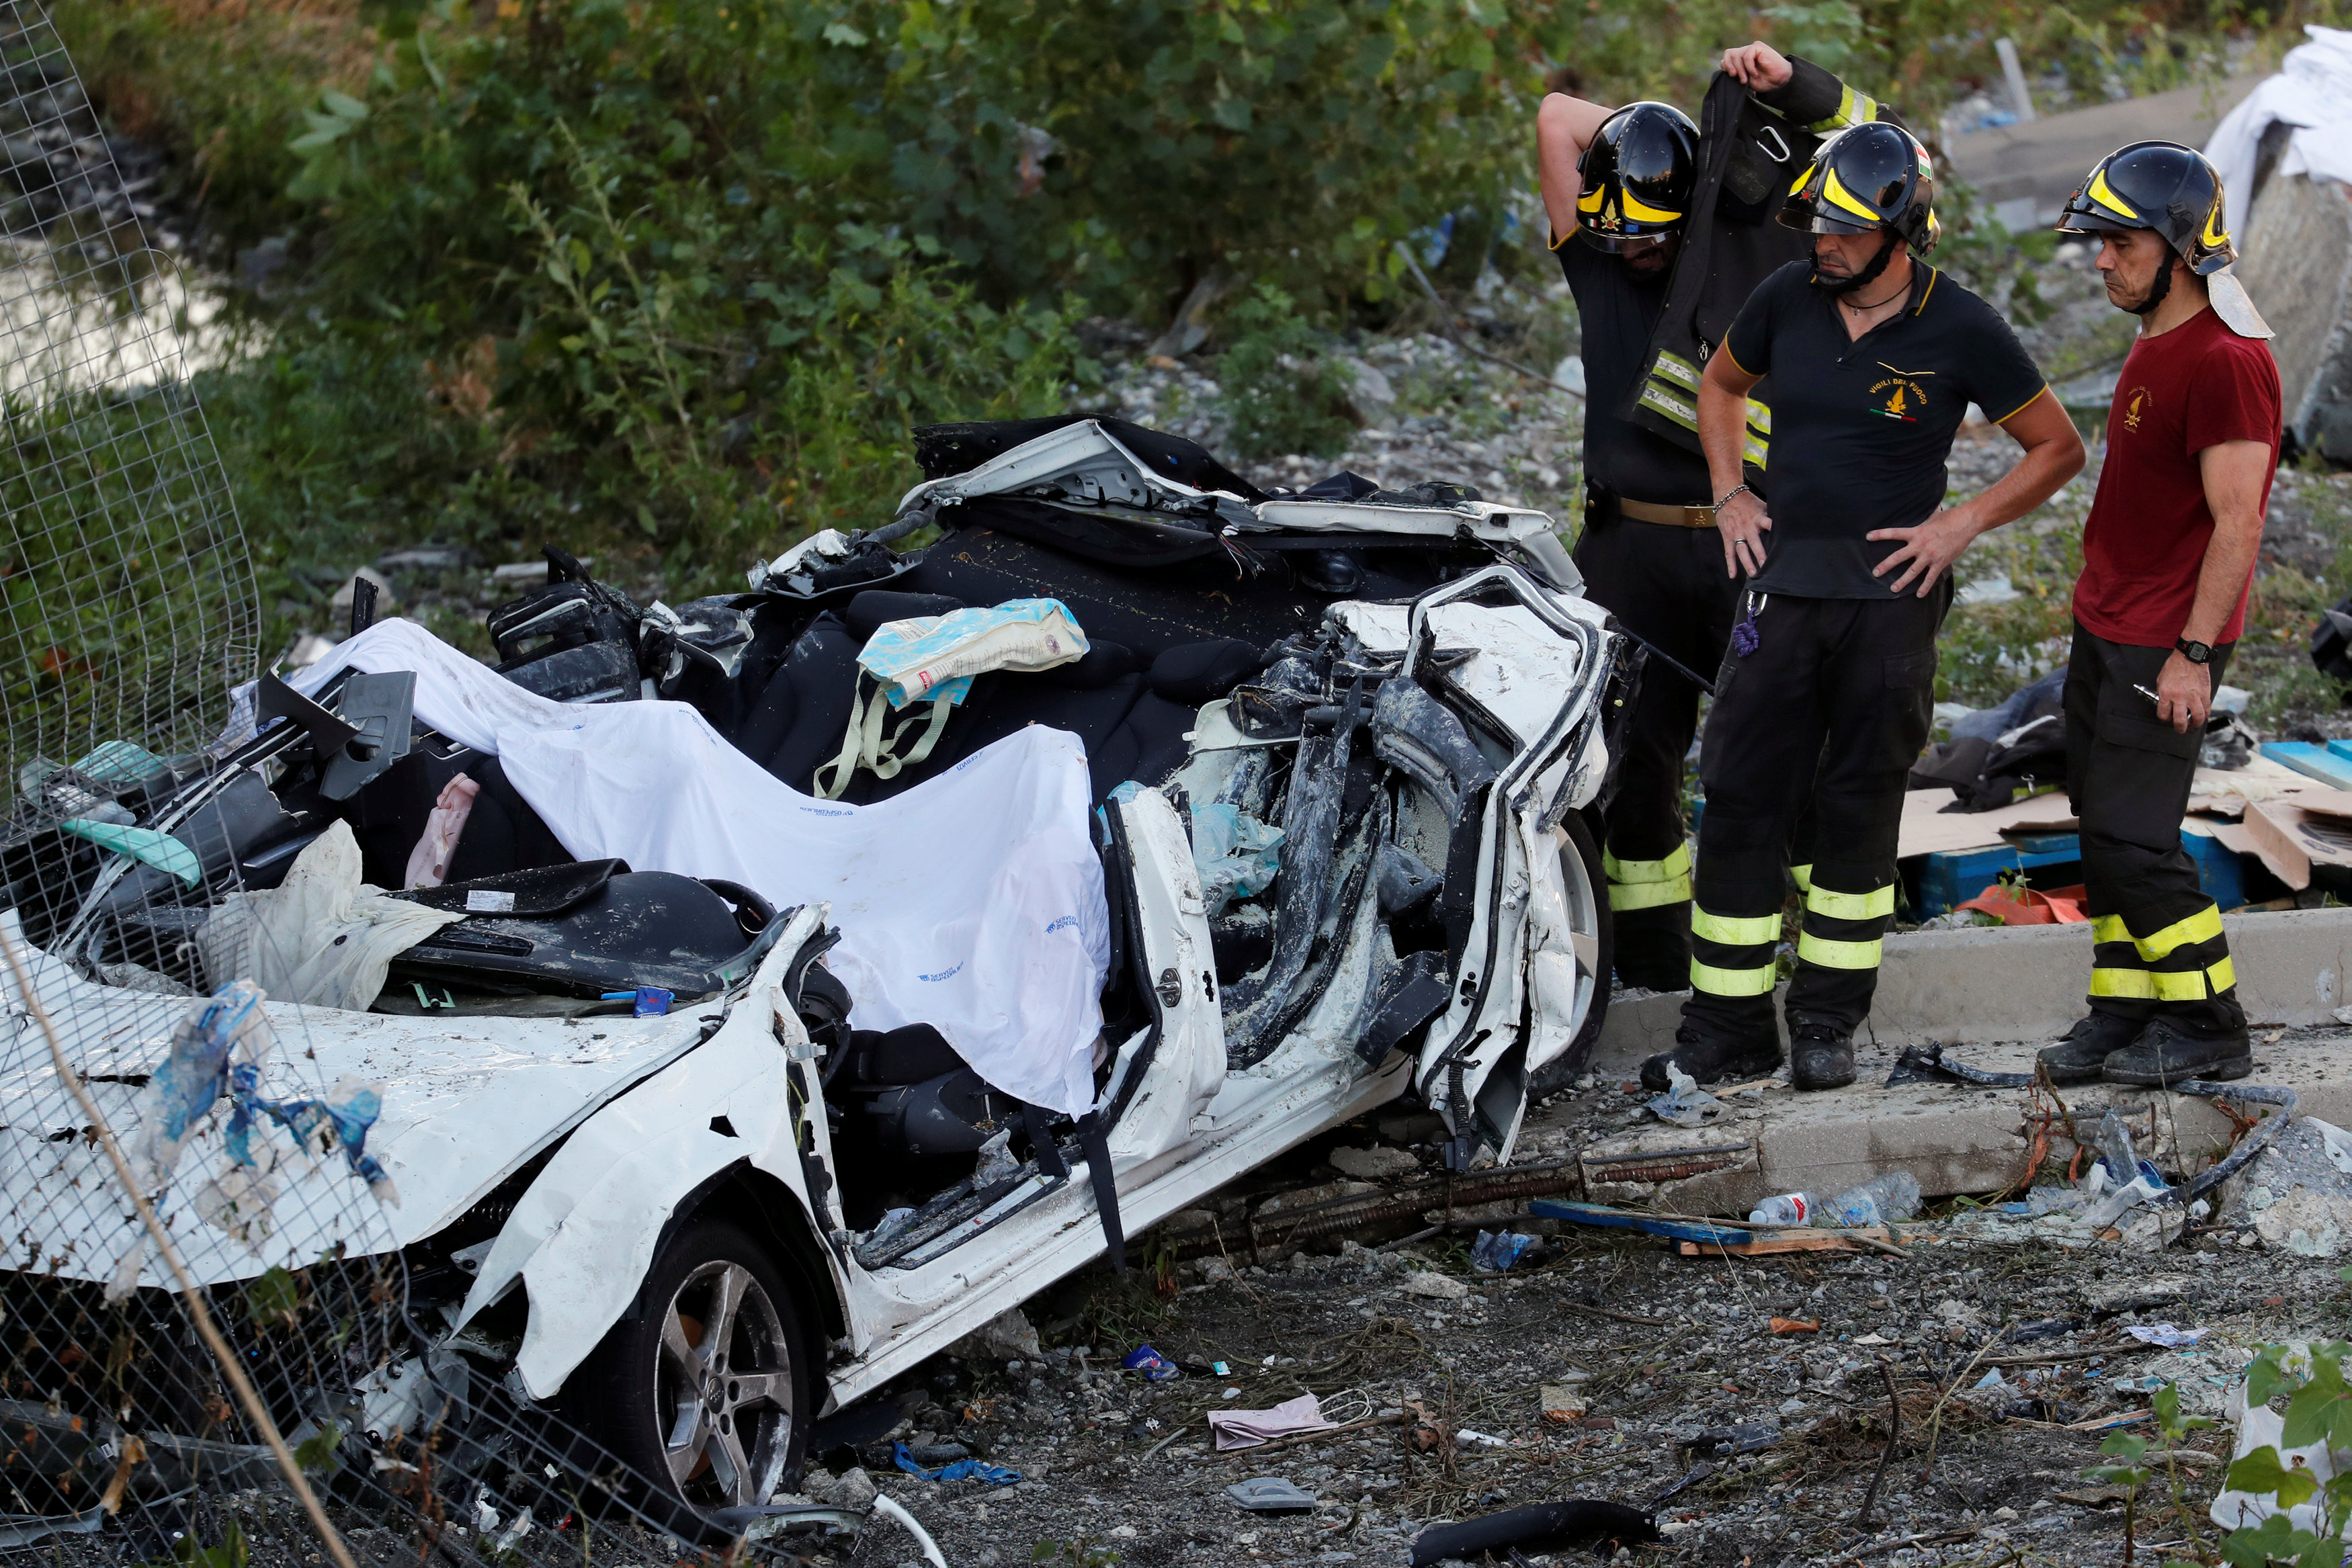 Firefighters stand next to crushed car at collapsed Morandi Bridge site in Genoa